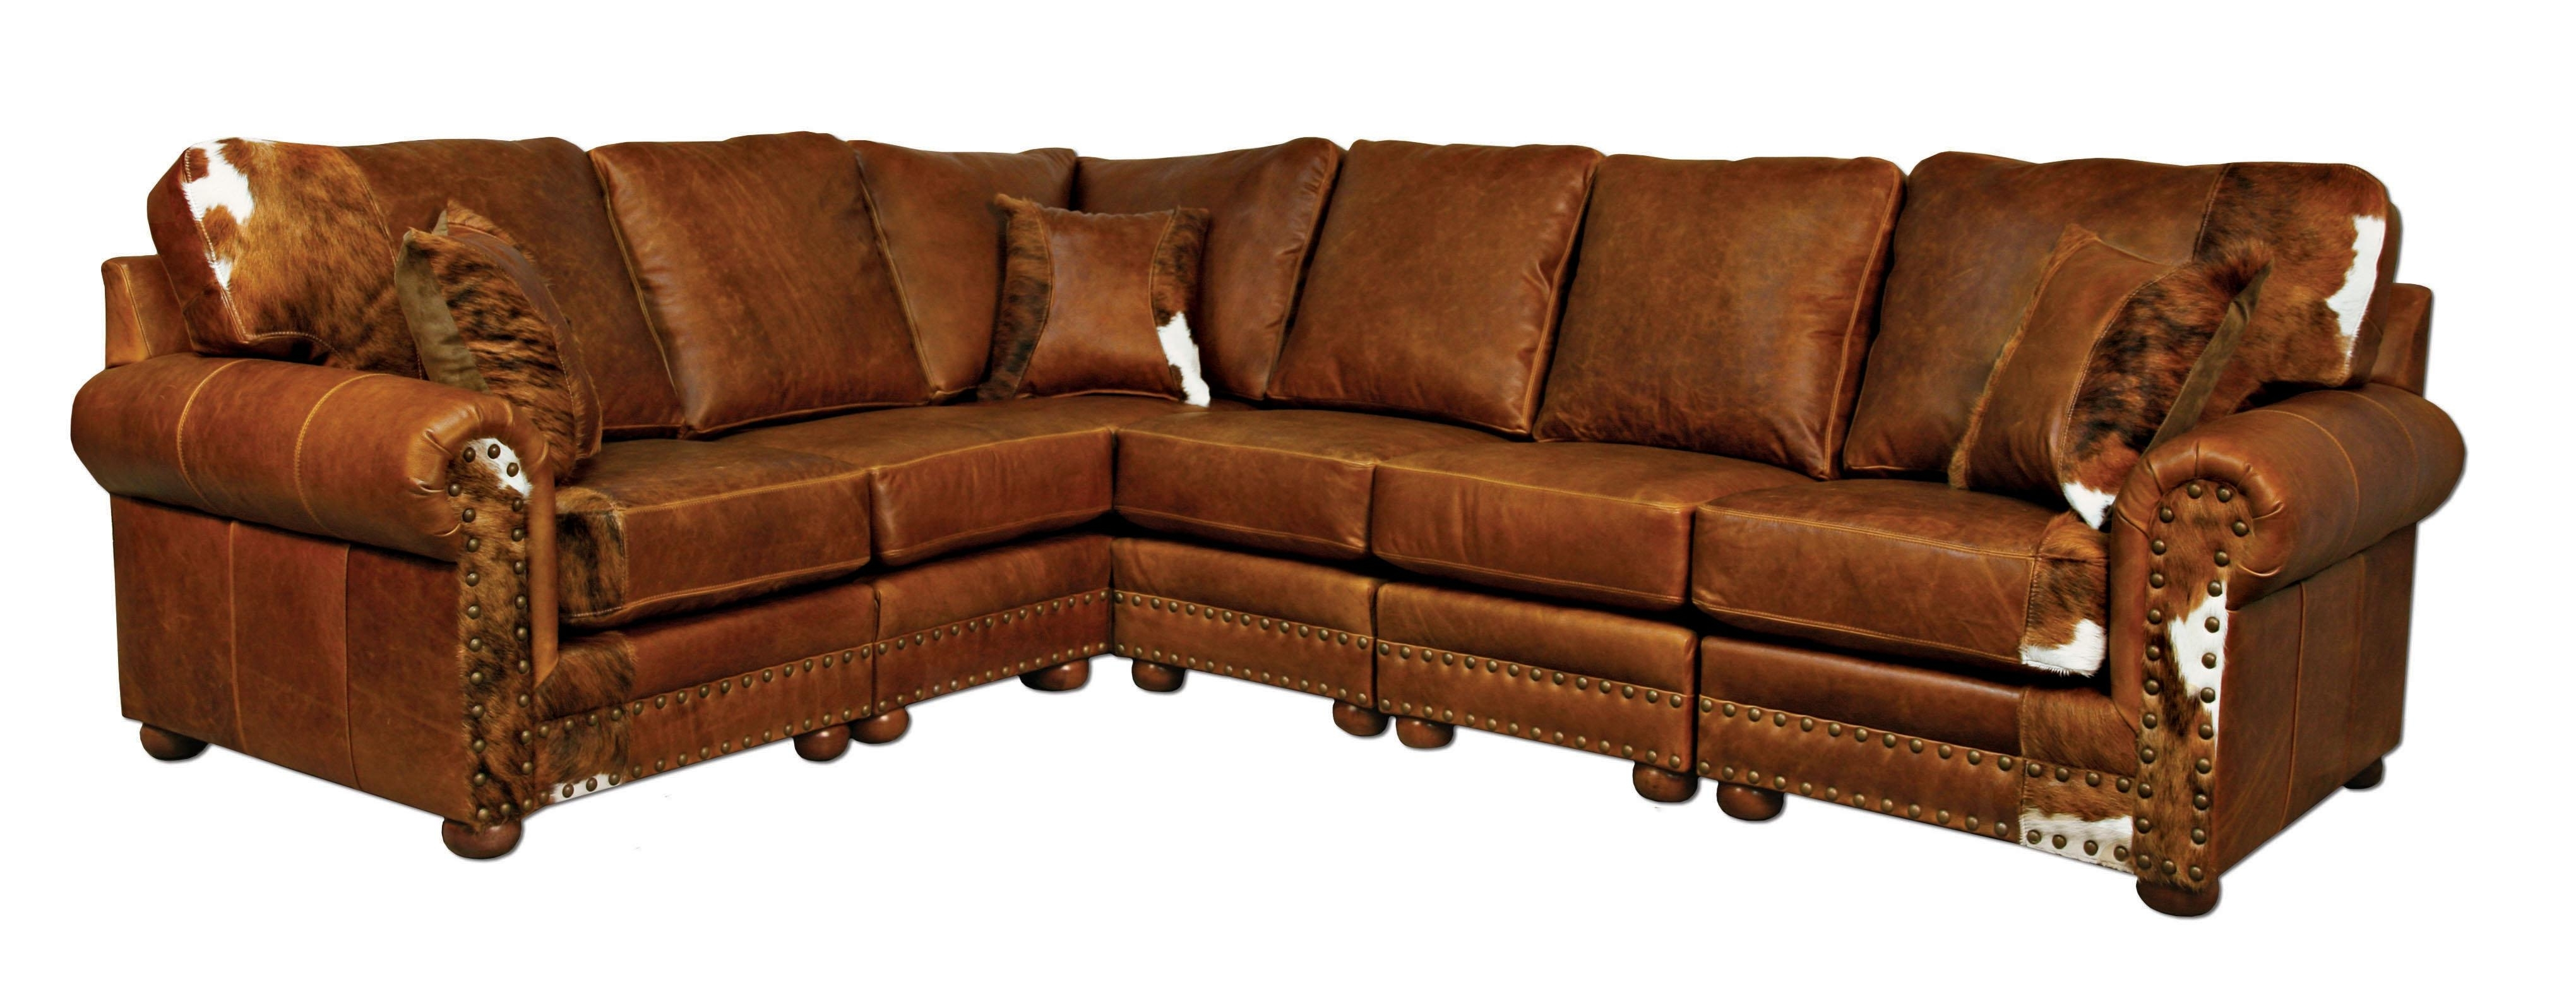 Sectional Sofa Design: Amazing Western Sectional Sofa Western Throughout Most Up To Date Western Style Sectional Sofas (View 5 of 15)